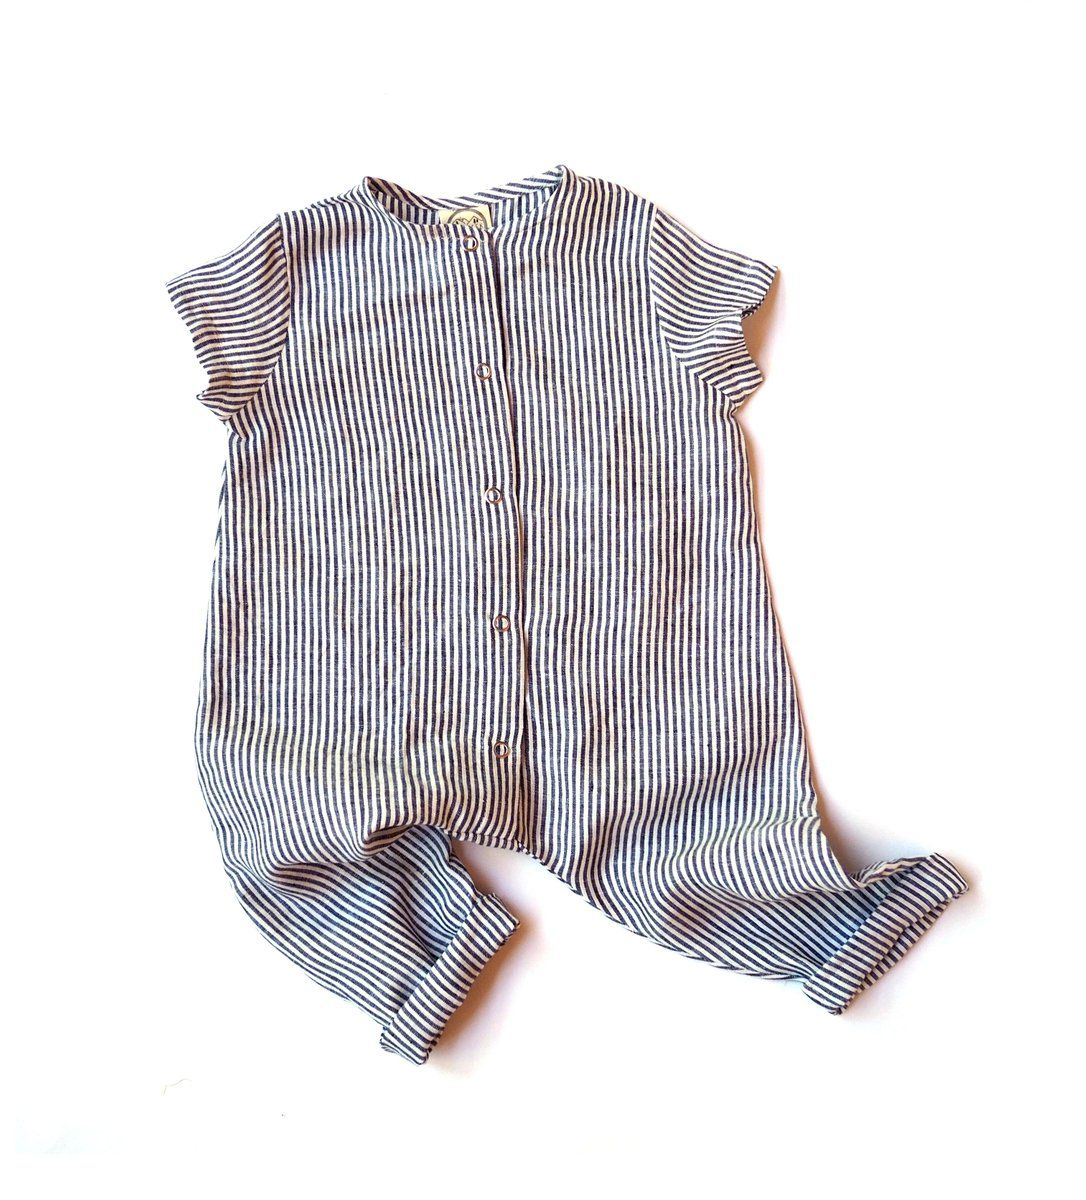 A Short Sleeve Slip On Jumpsuit With Bias Binding On The